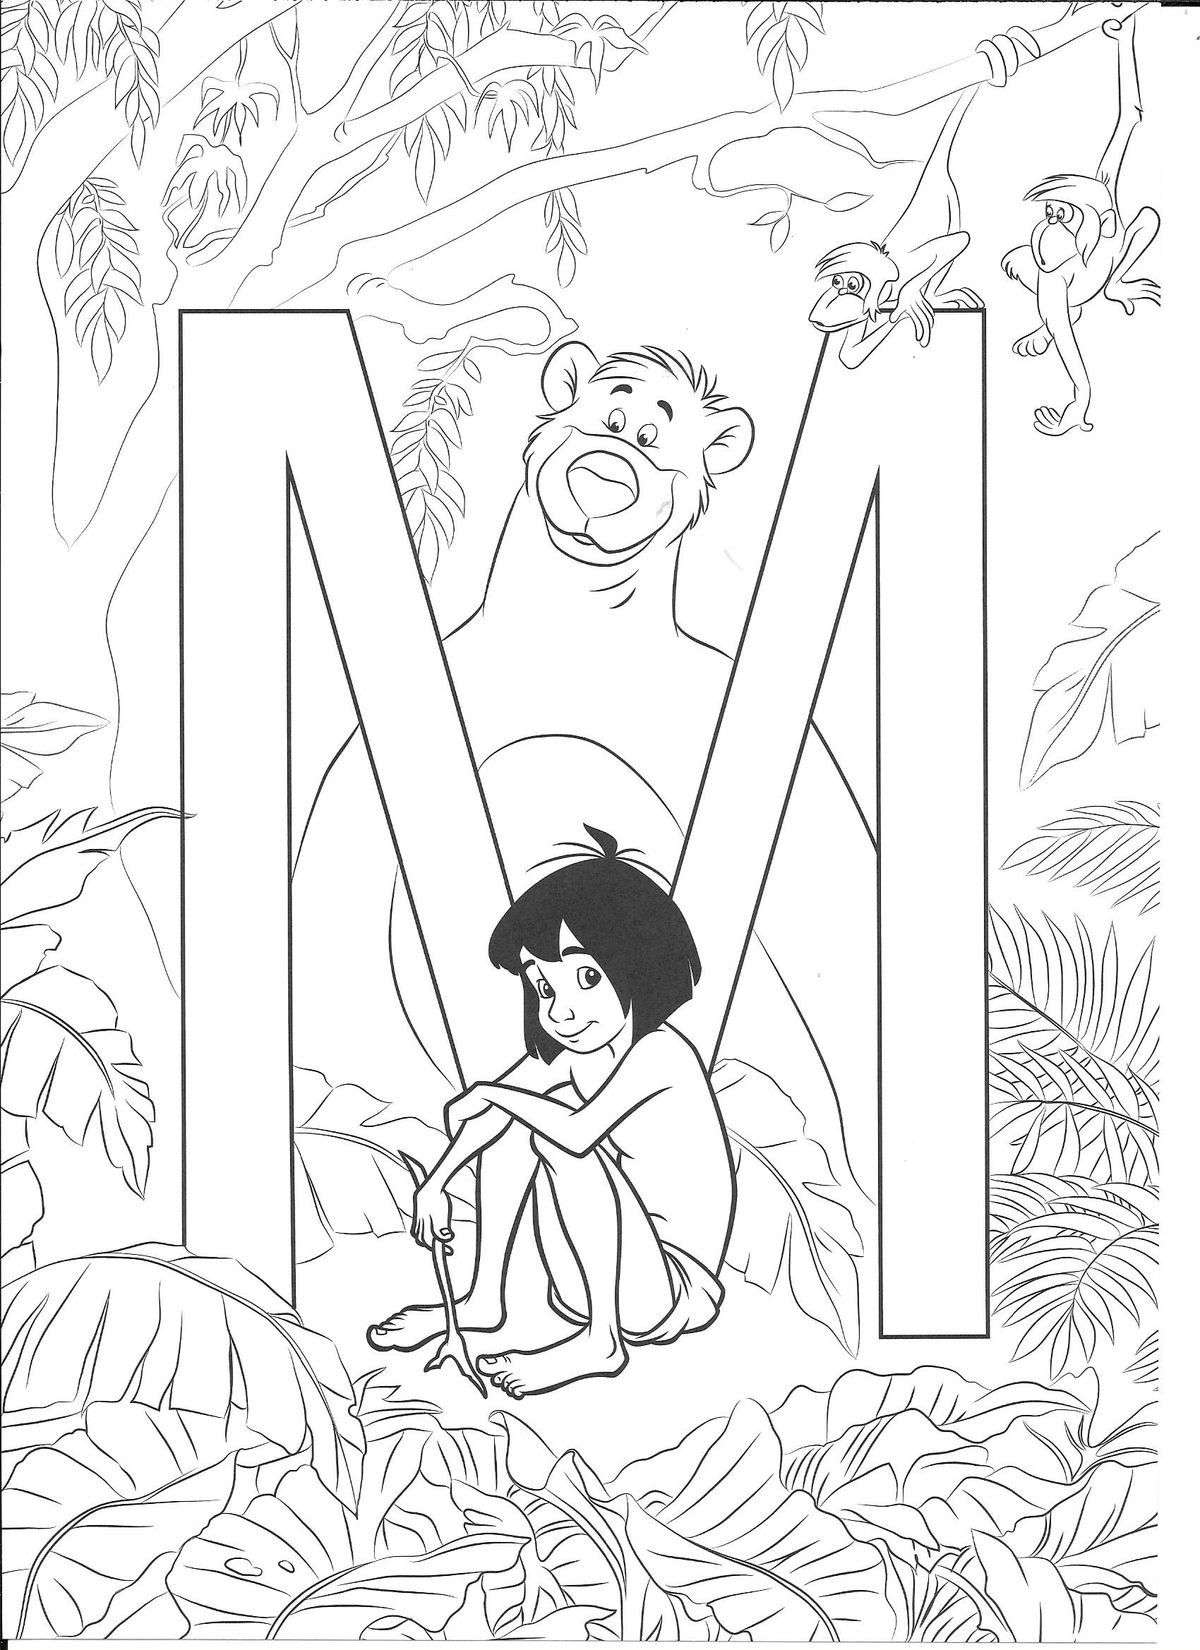 Pin By Cheryl Smith On Alphabet Coloring Sheets Abc Coloring Pages Disney Princess Coloring Pages Cartoon Coloring Pages